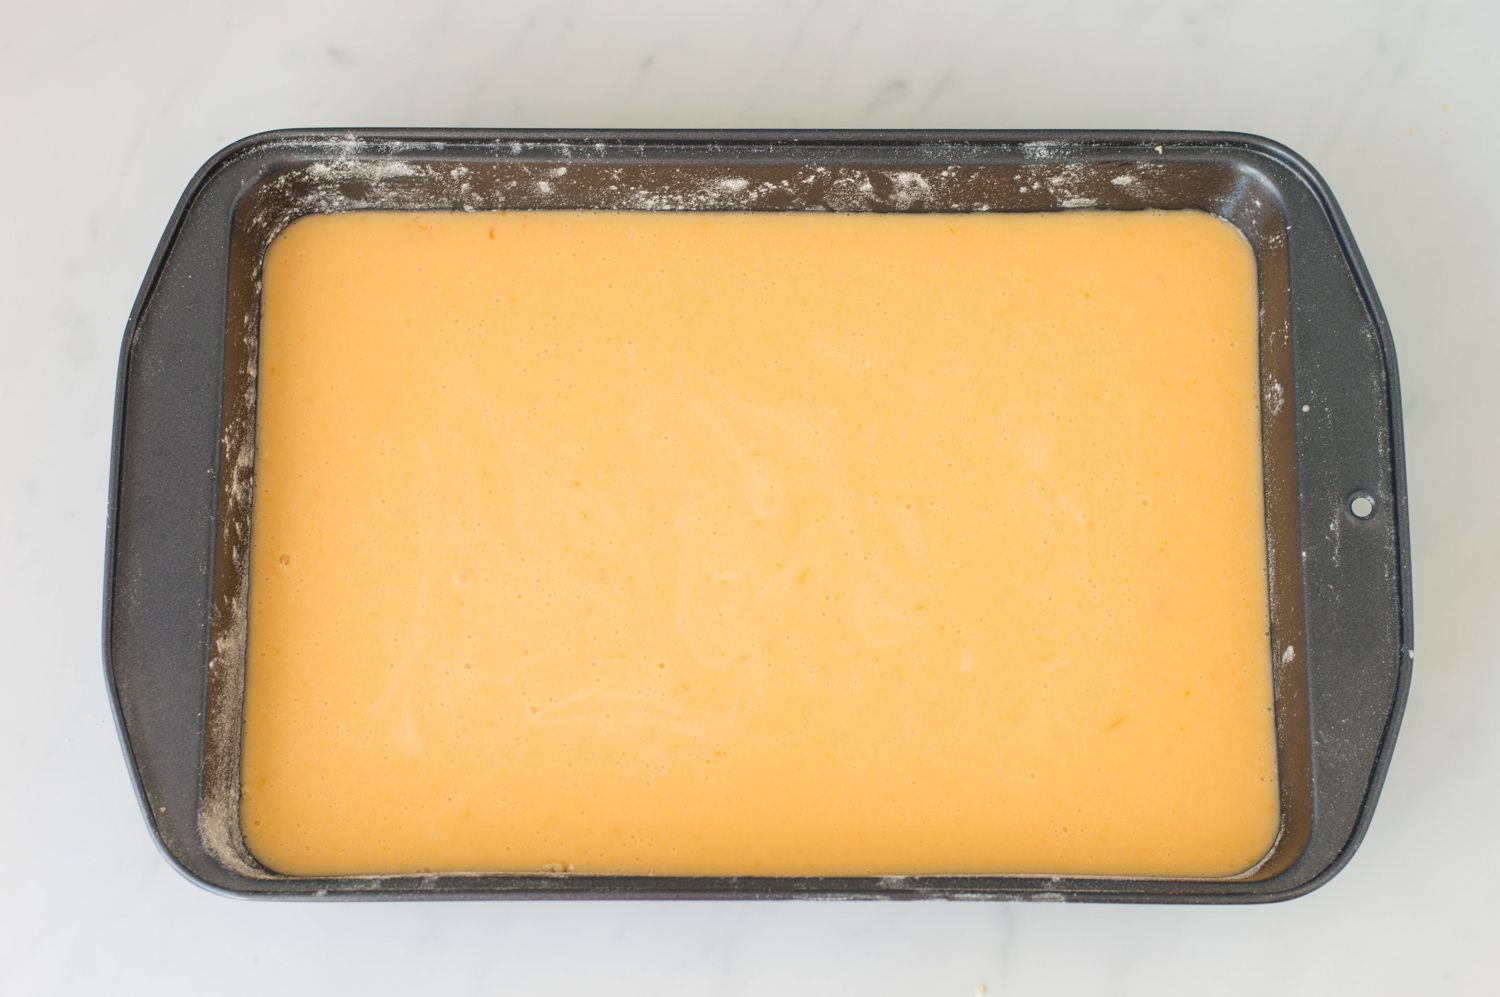 Cream cheese mixture poured over baking pan